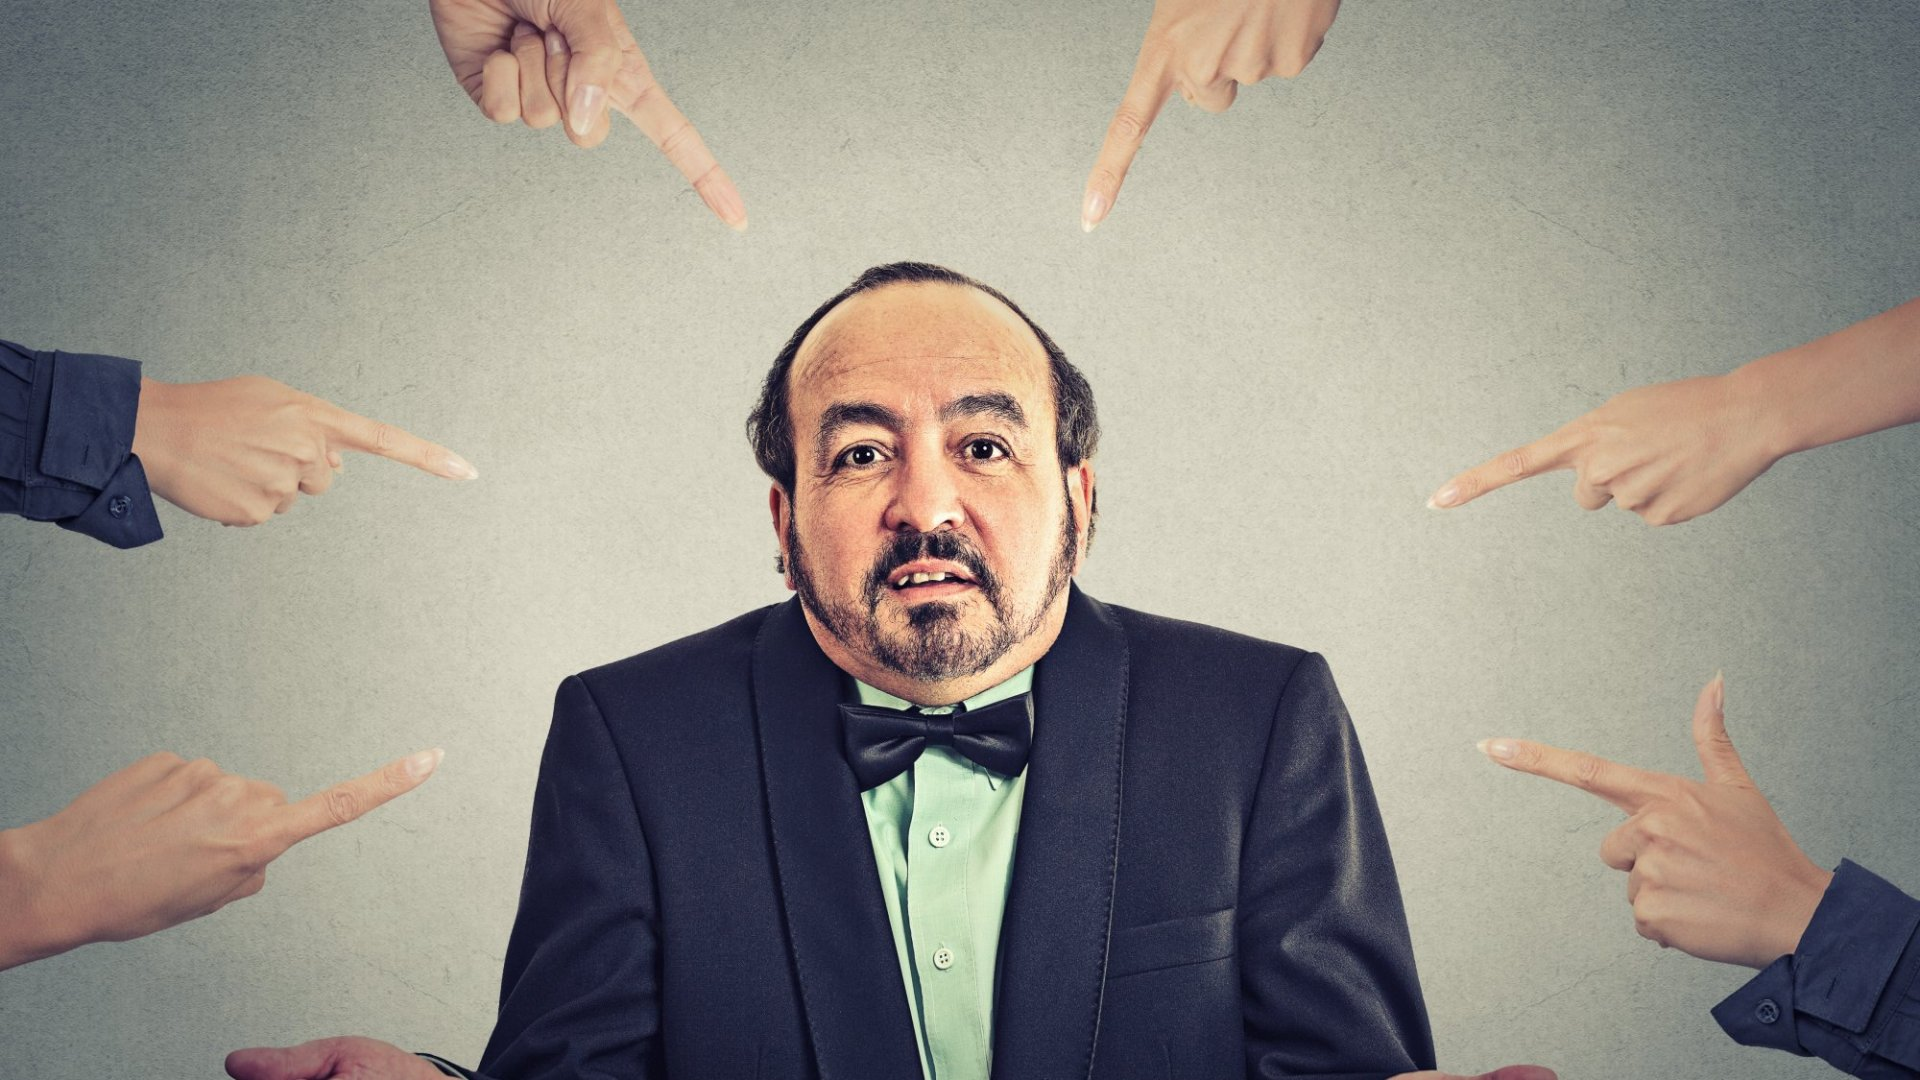 3 Signs You're the Toxic Person in Your Workplace (and What to Do About It)